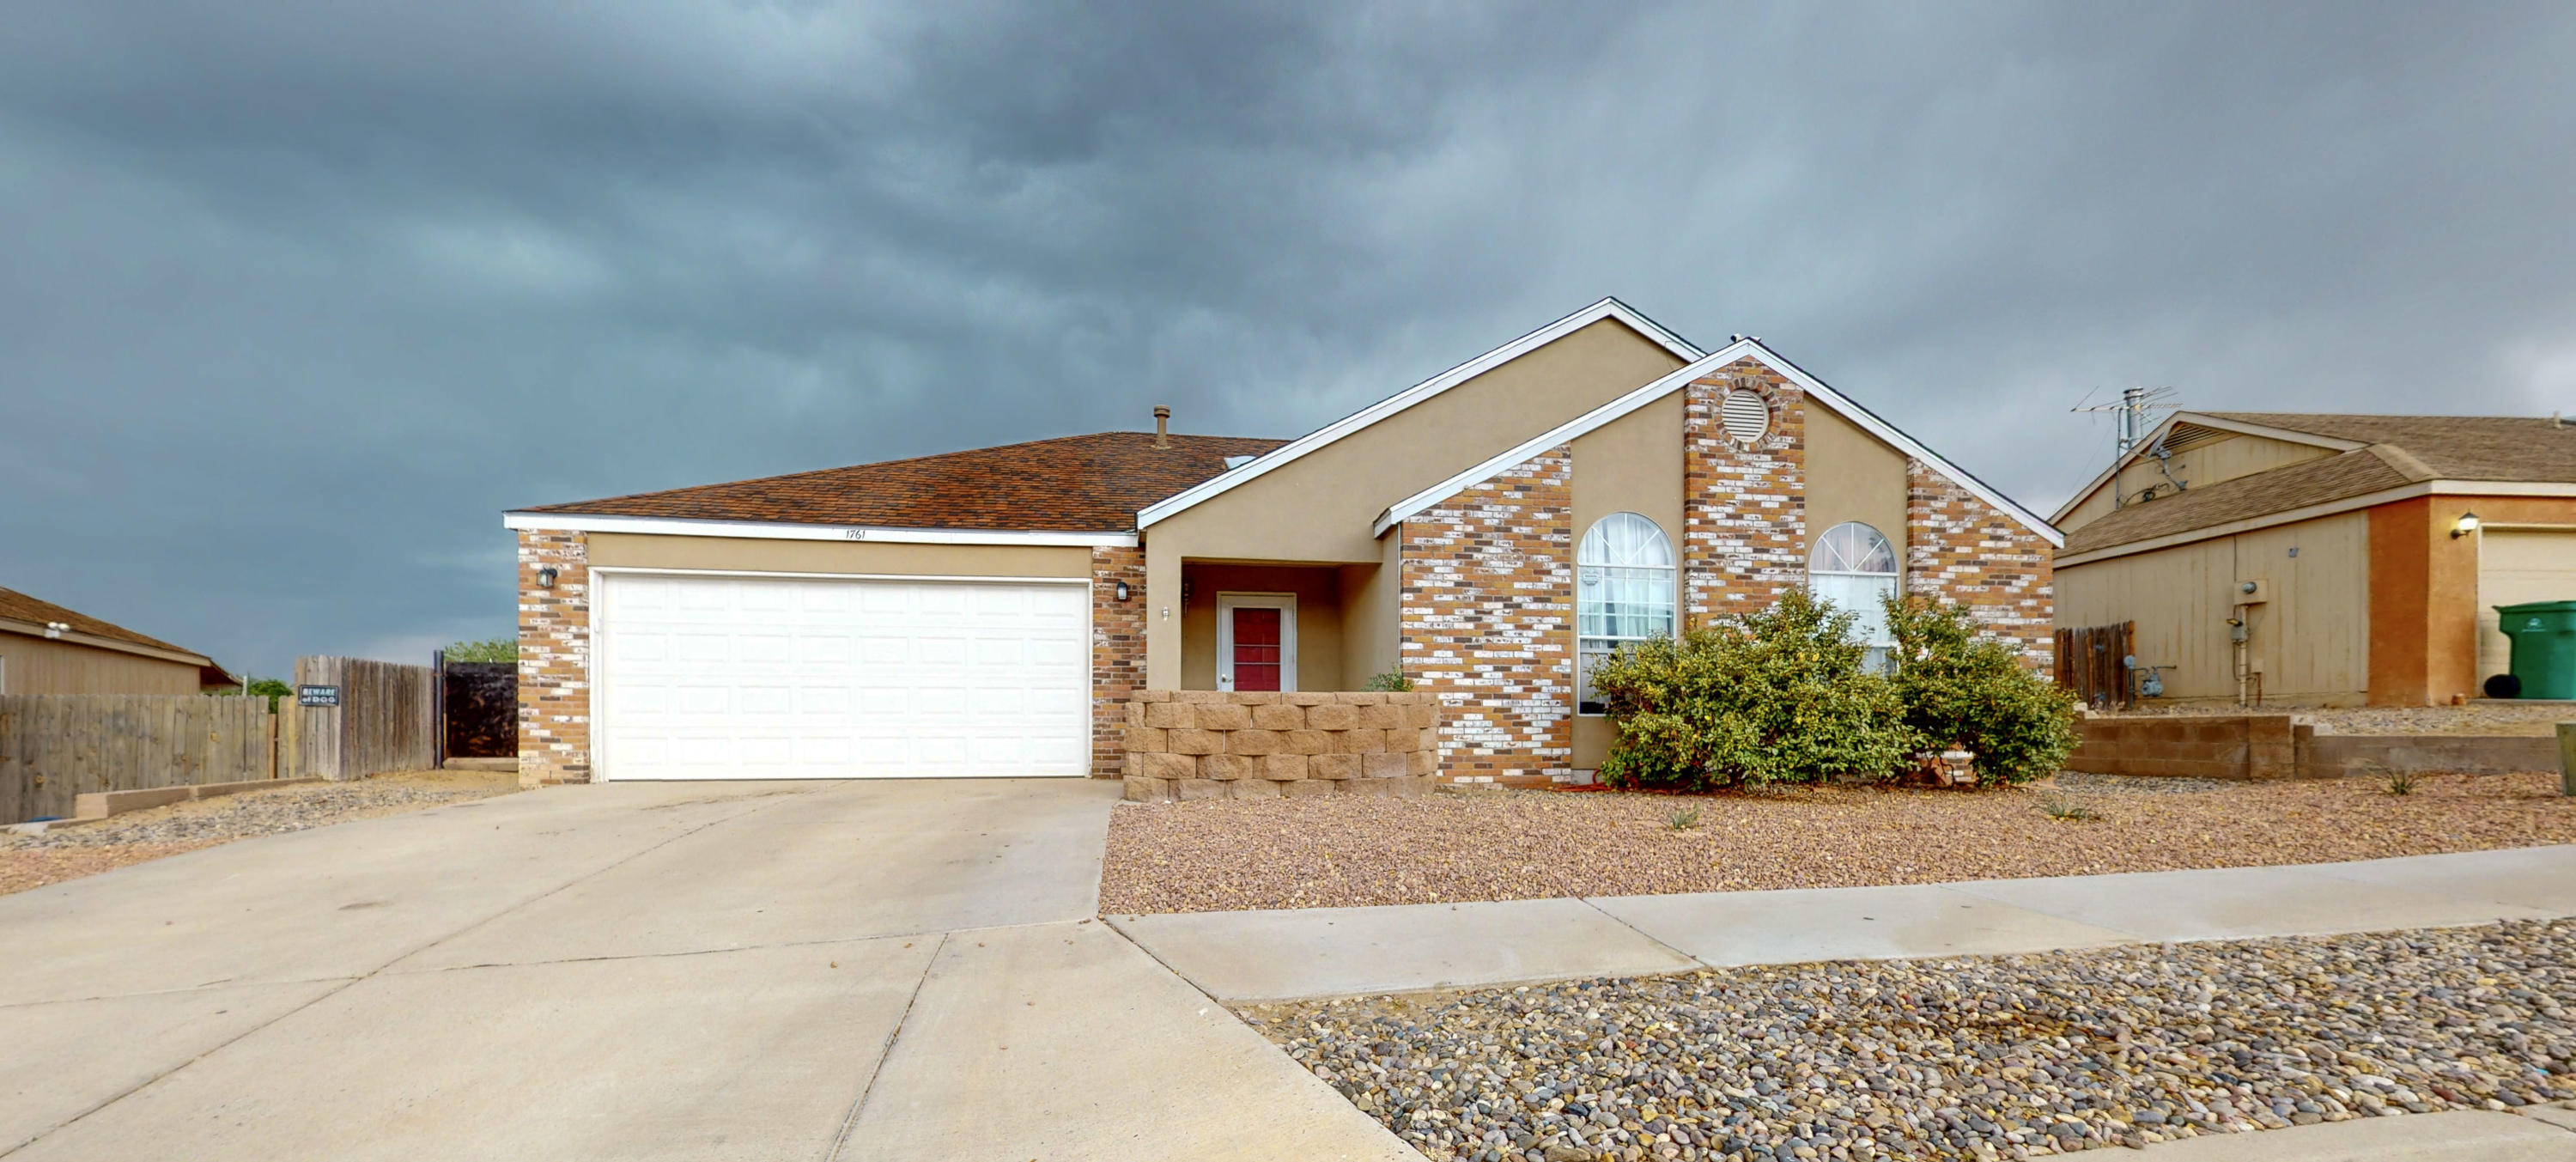 Lovely home in Rio Rancho! Granite countertops, newer cabinets with soft close drawers Home features large backyard with large Redwood deck and pergola, and storage unit. Master bedroom has separate his and hers closets with the master bath featuring double sinks and full bath! Living area has large windows and opens up to the large country kitchen!